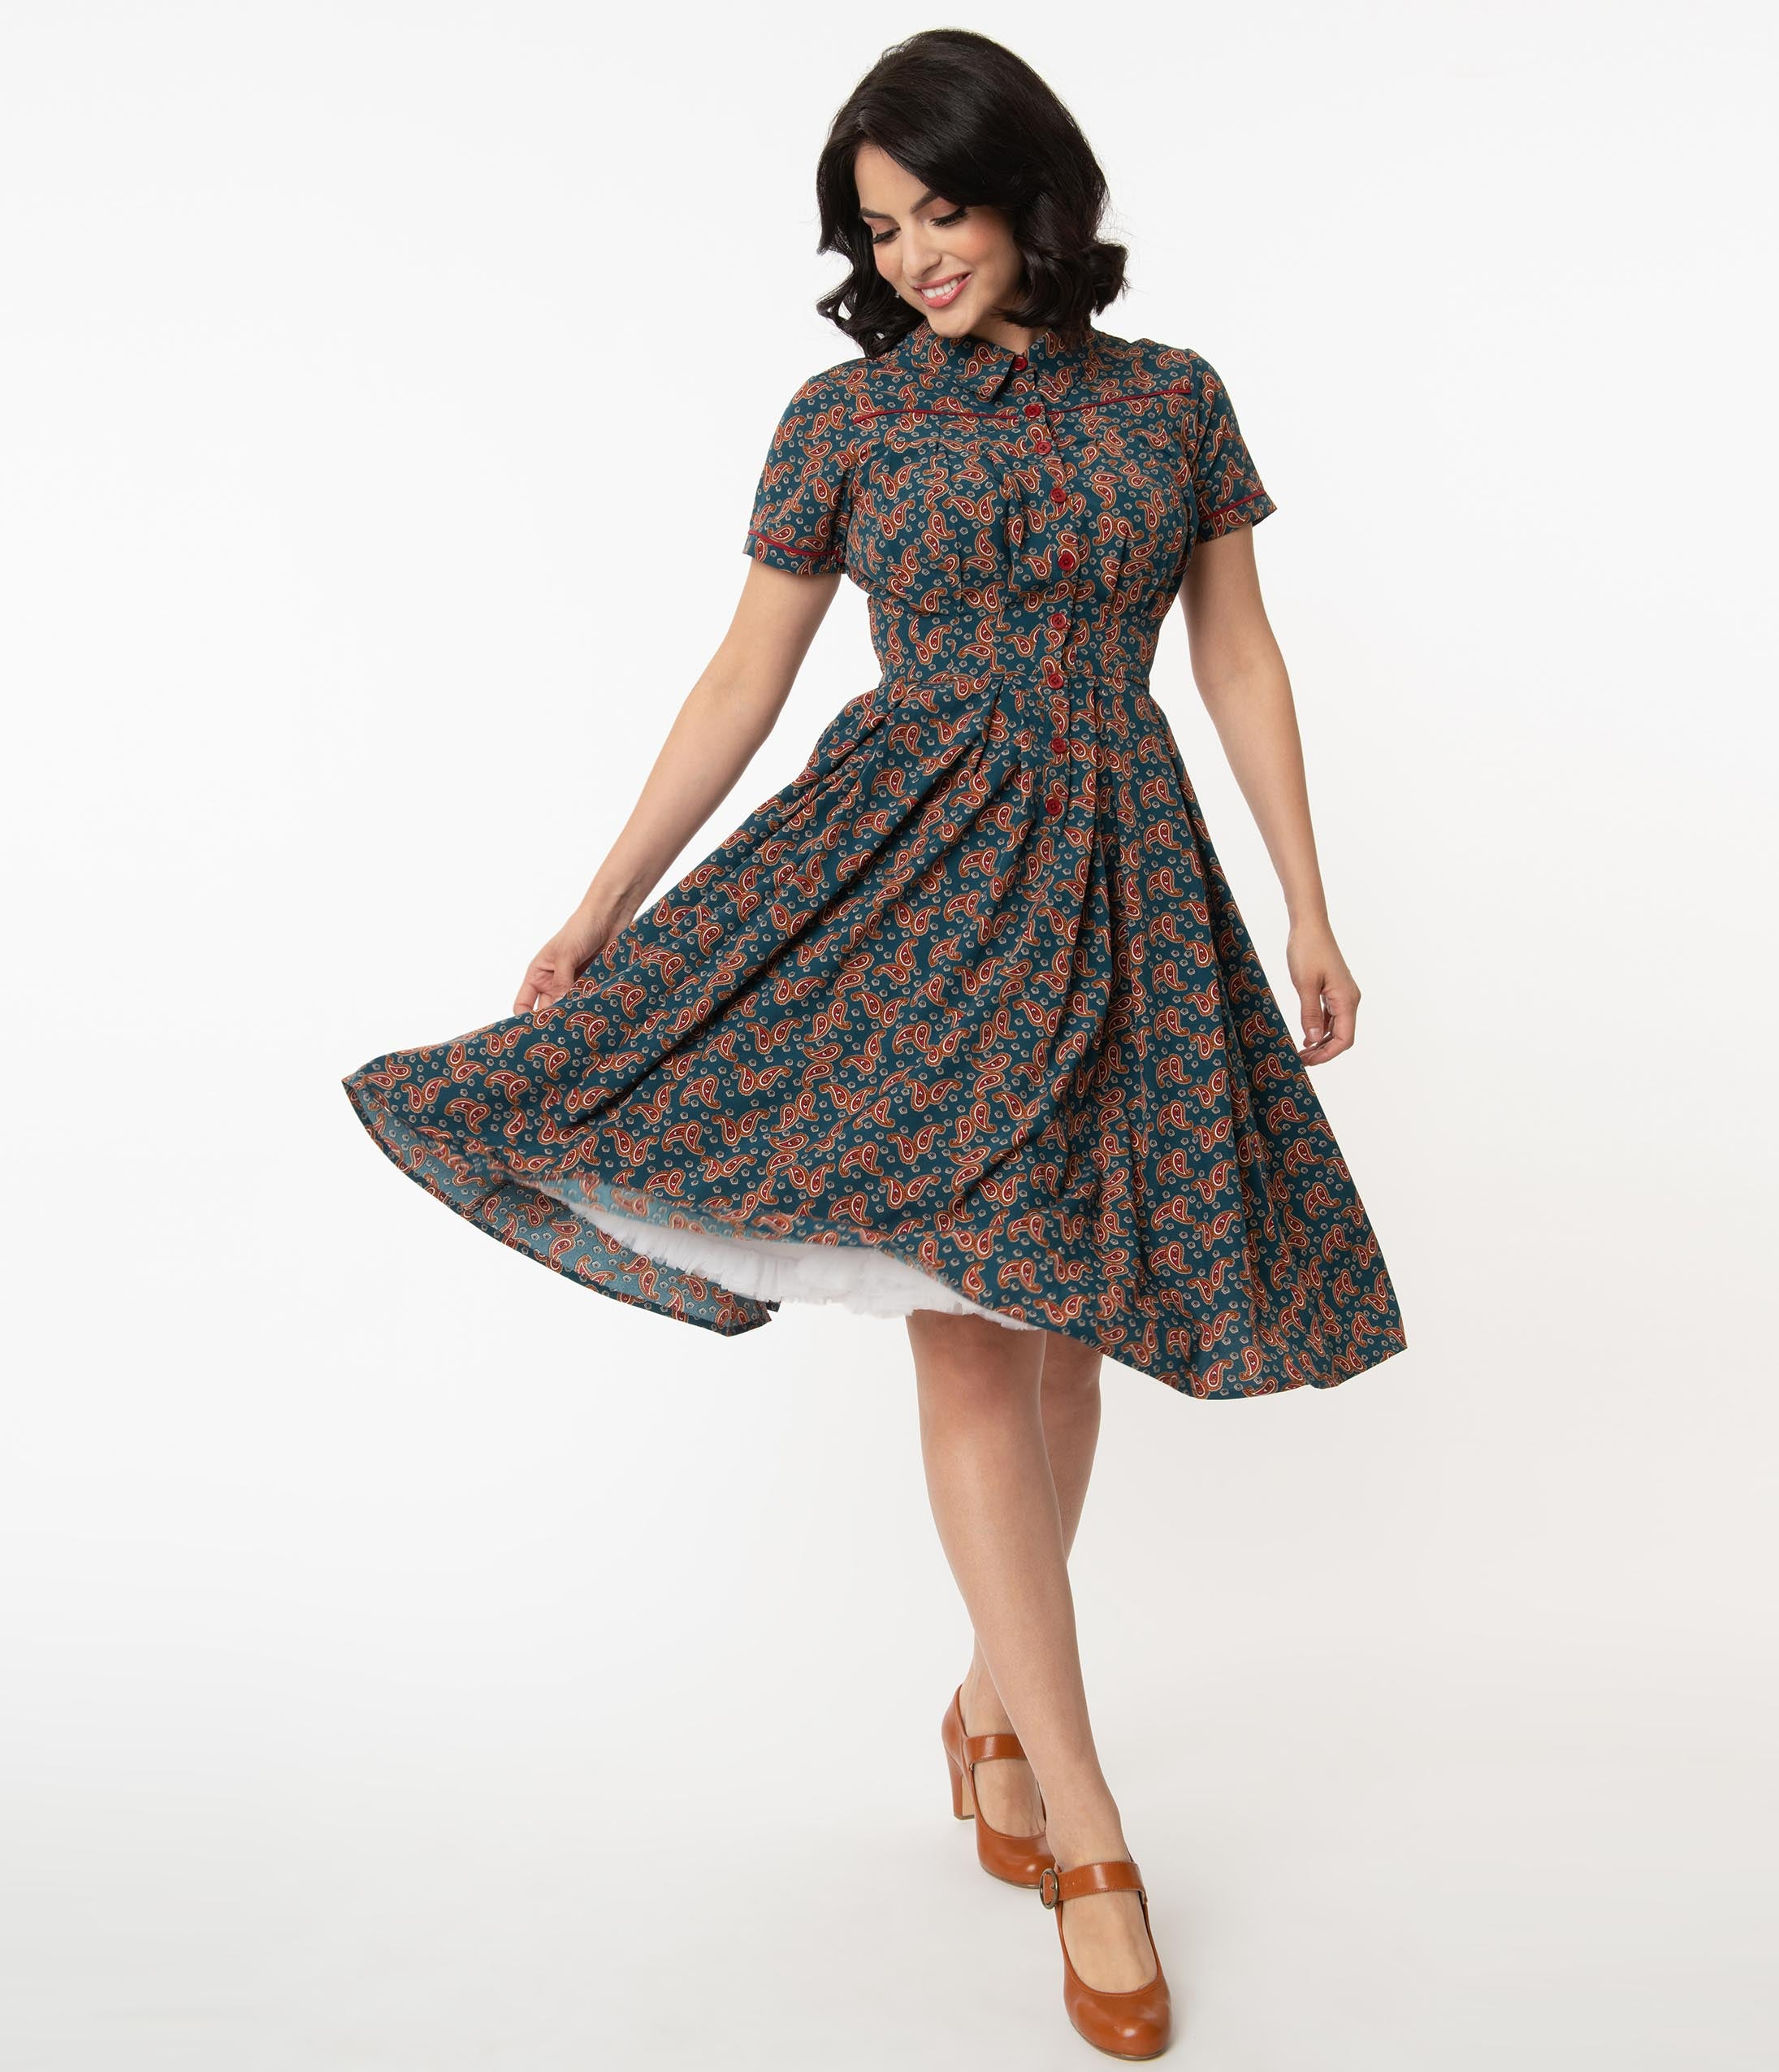 1940s Style Clothing & 40s Fashion Unique Vintage Teal  Paisley Print Springfield Swing Dress $68.00 AT vintagedancer.com